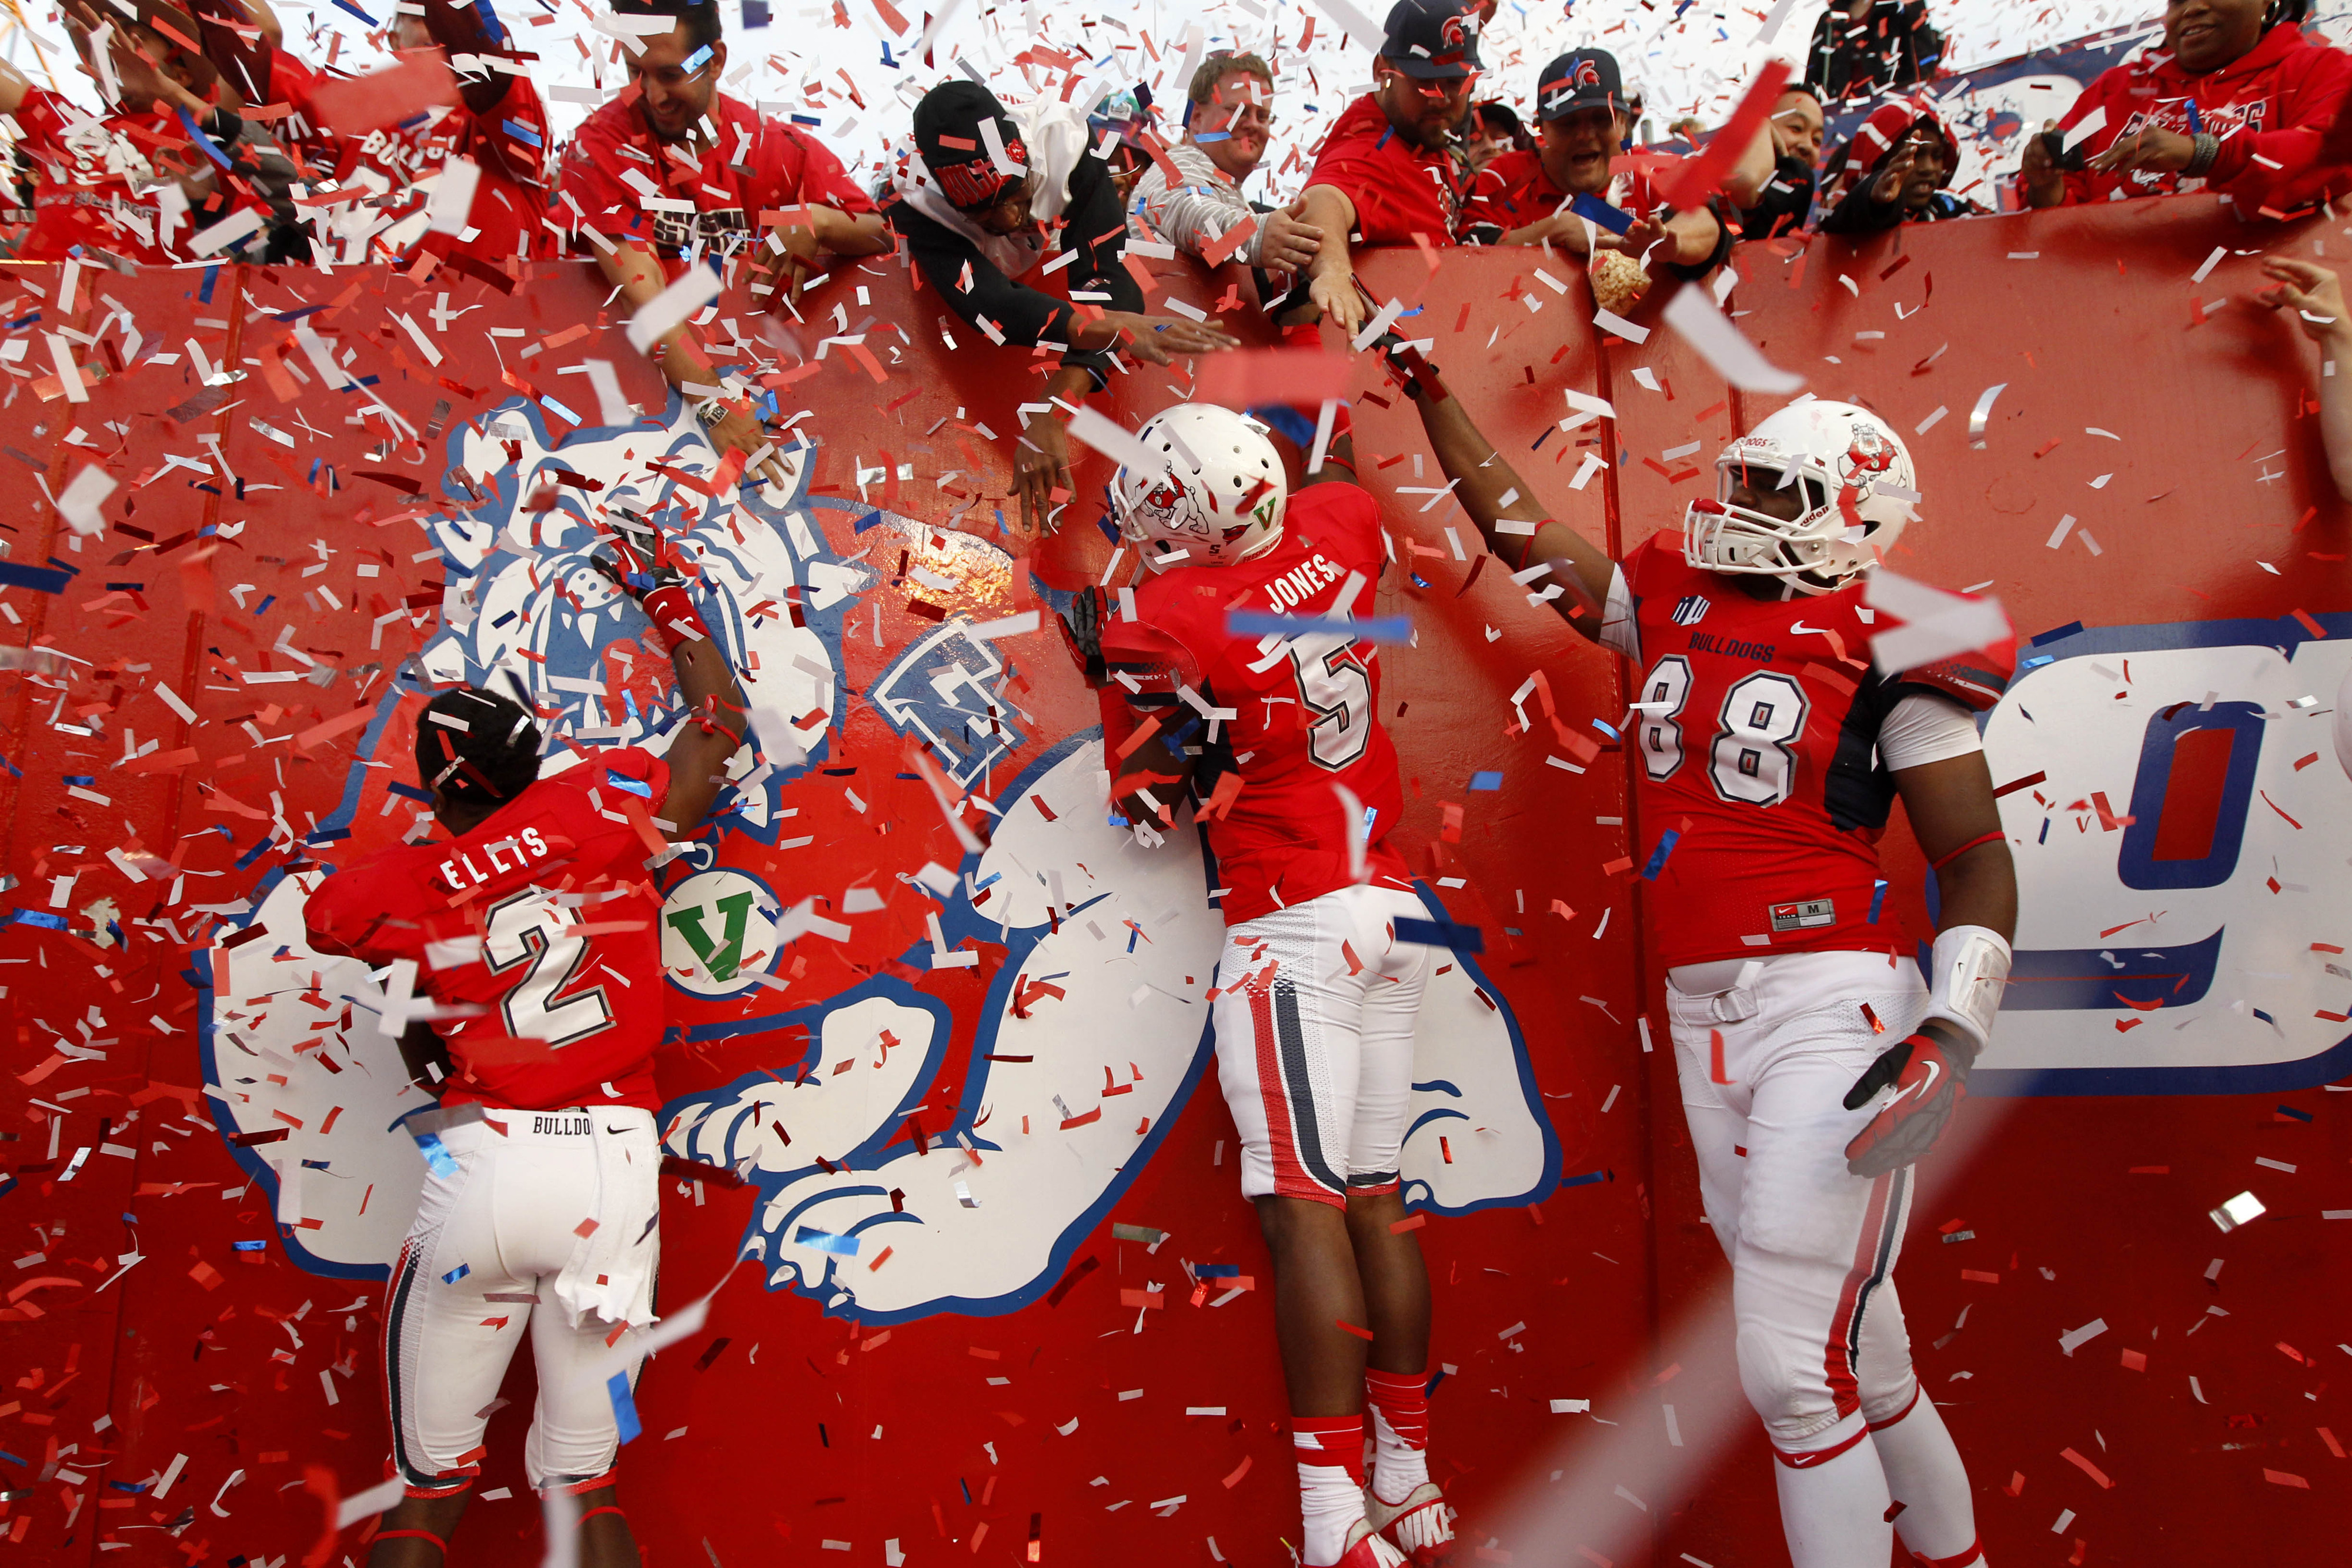 Left to right, Jamal Ellis, Dalen Jones and Jerin McClendon figure to be important pieces of the 2014 Fresno State roster.